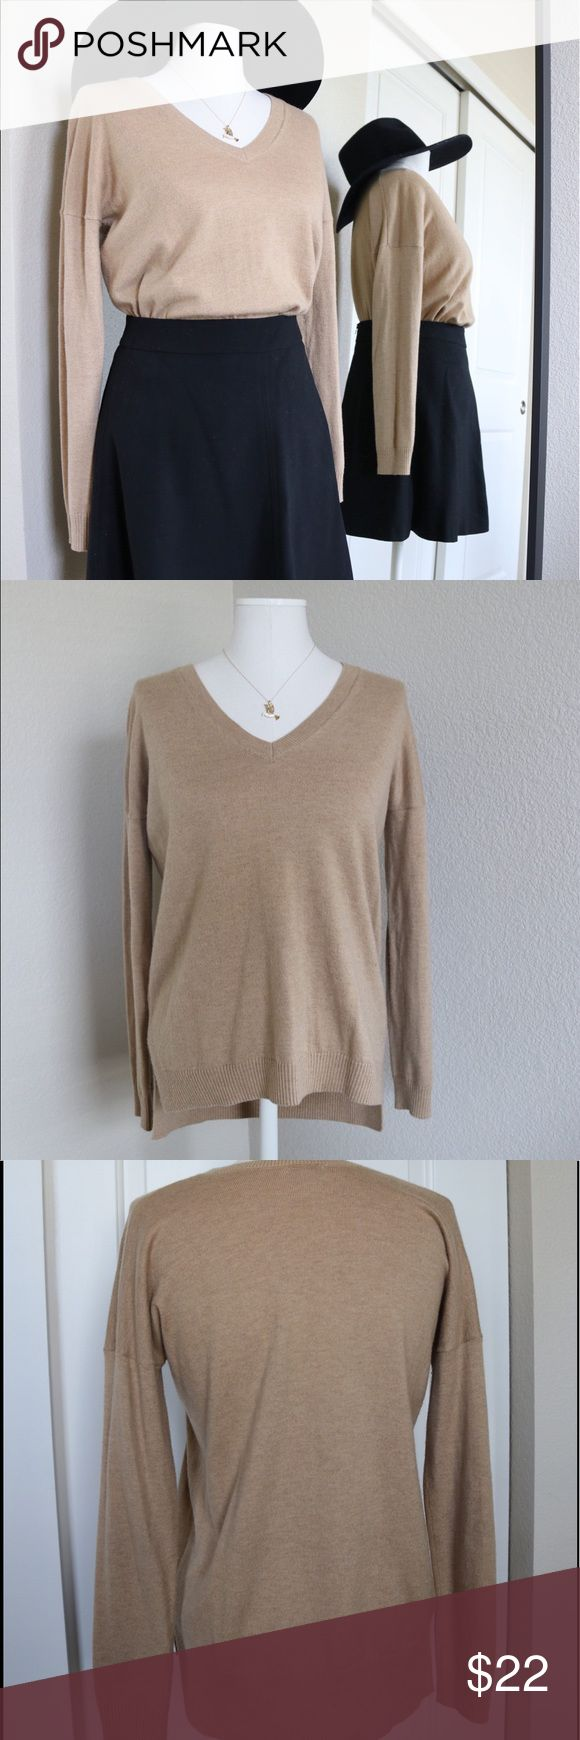 GAP - Soft Camel V-Neck Pullover Sweater GAP soft v-neck camel color pullover sweater is now up for grabs! The sweater is a size extra small, but fits slightly oversized in the body. The fit goes great when pulled over a button up collared blouse. If you want a looser fit, wear with on it's own or with a thin cami beneath. It's made mostly of nylon and won't shrink. Feel free to comment if you have additional questions. No trades but always open to negotiations! GAP Sweaters V-Necks